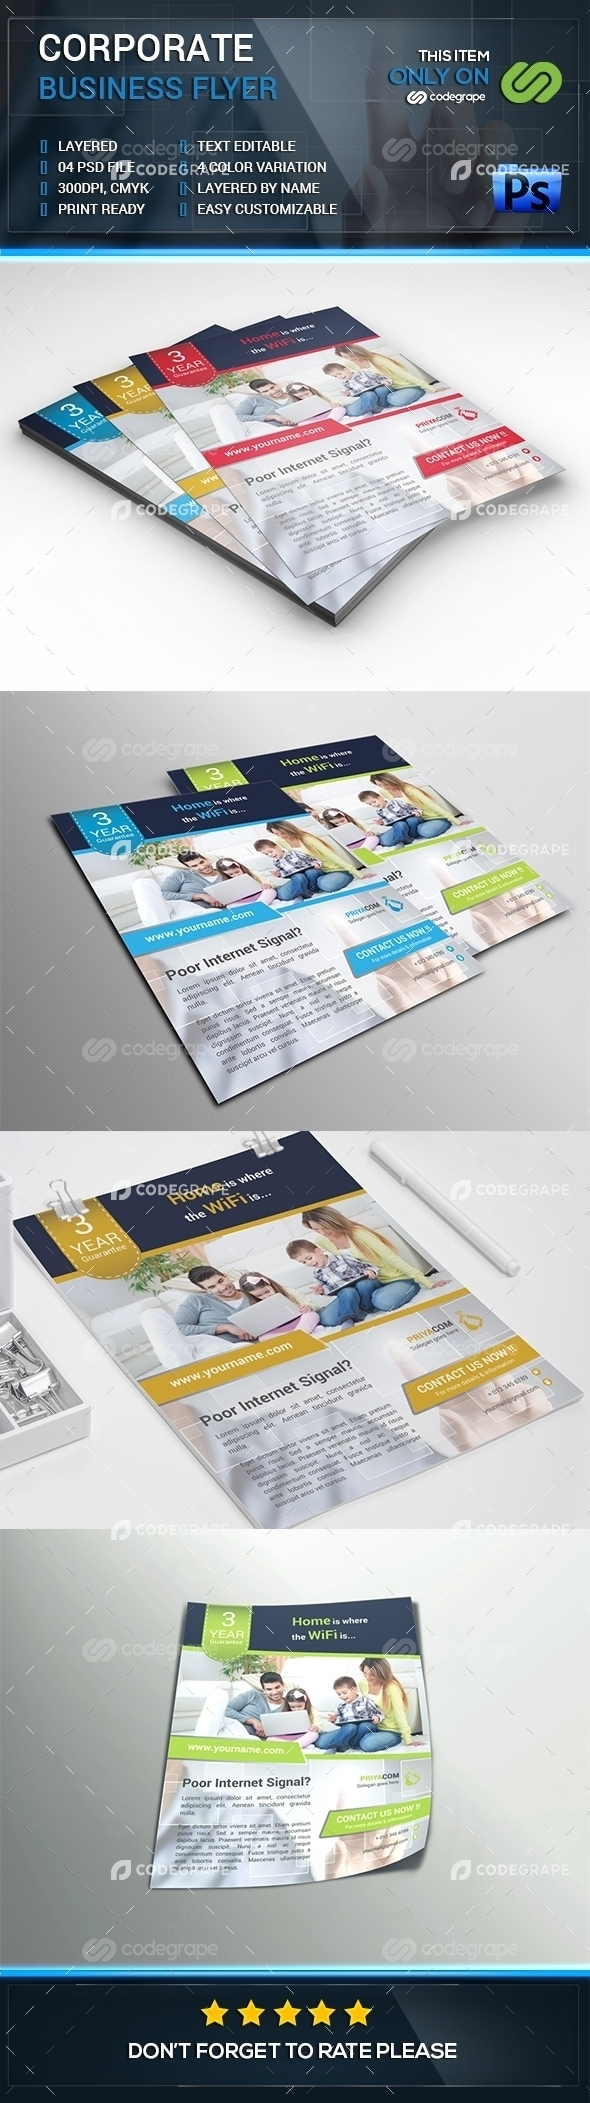 Corporate Business Flyer Vol. 2